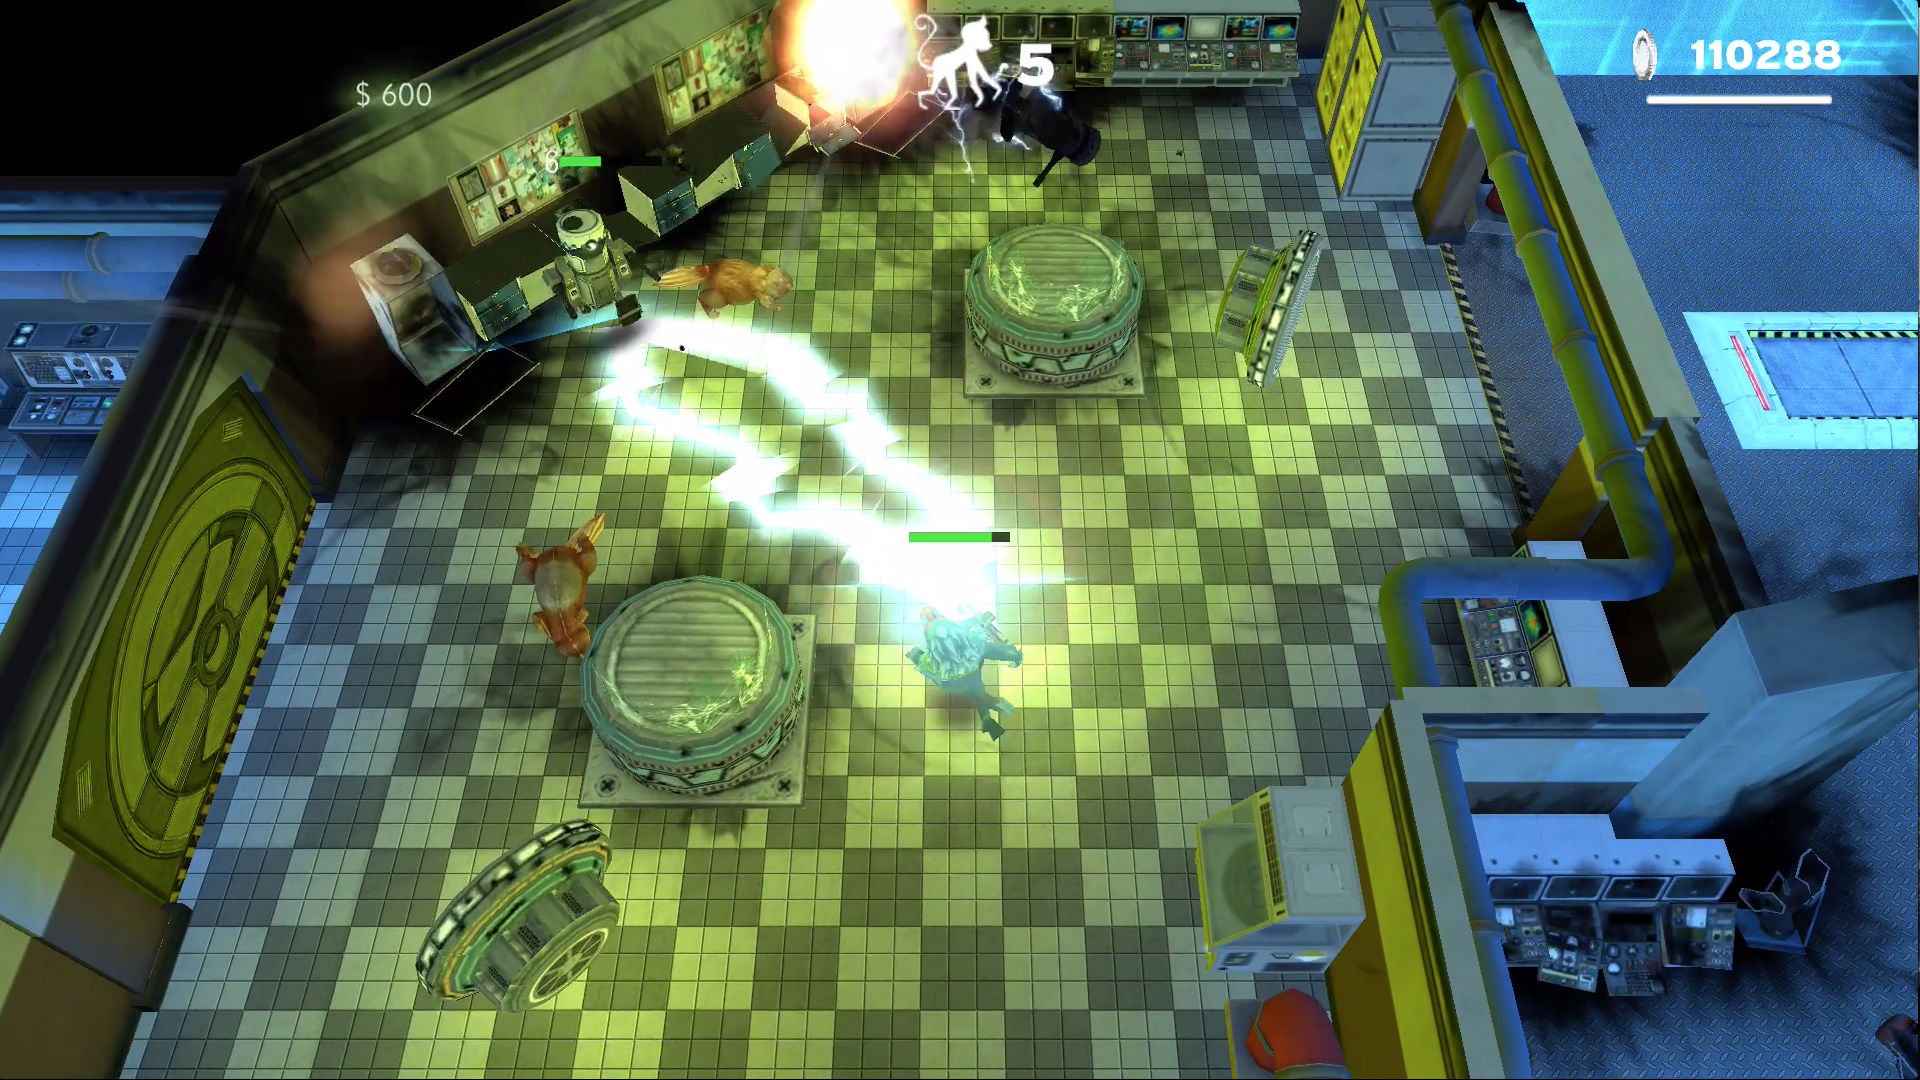 Time Monkeys - Arcade Shooter screenshot 3